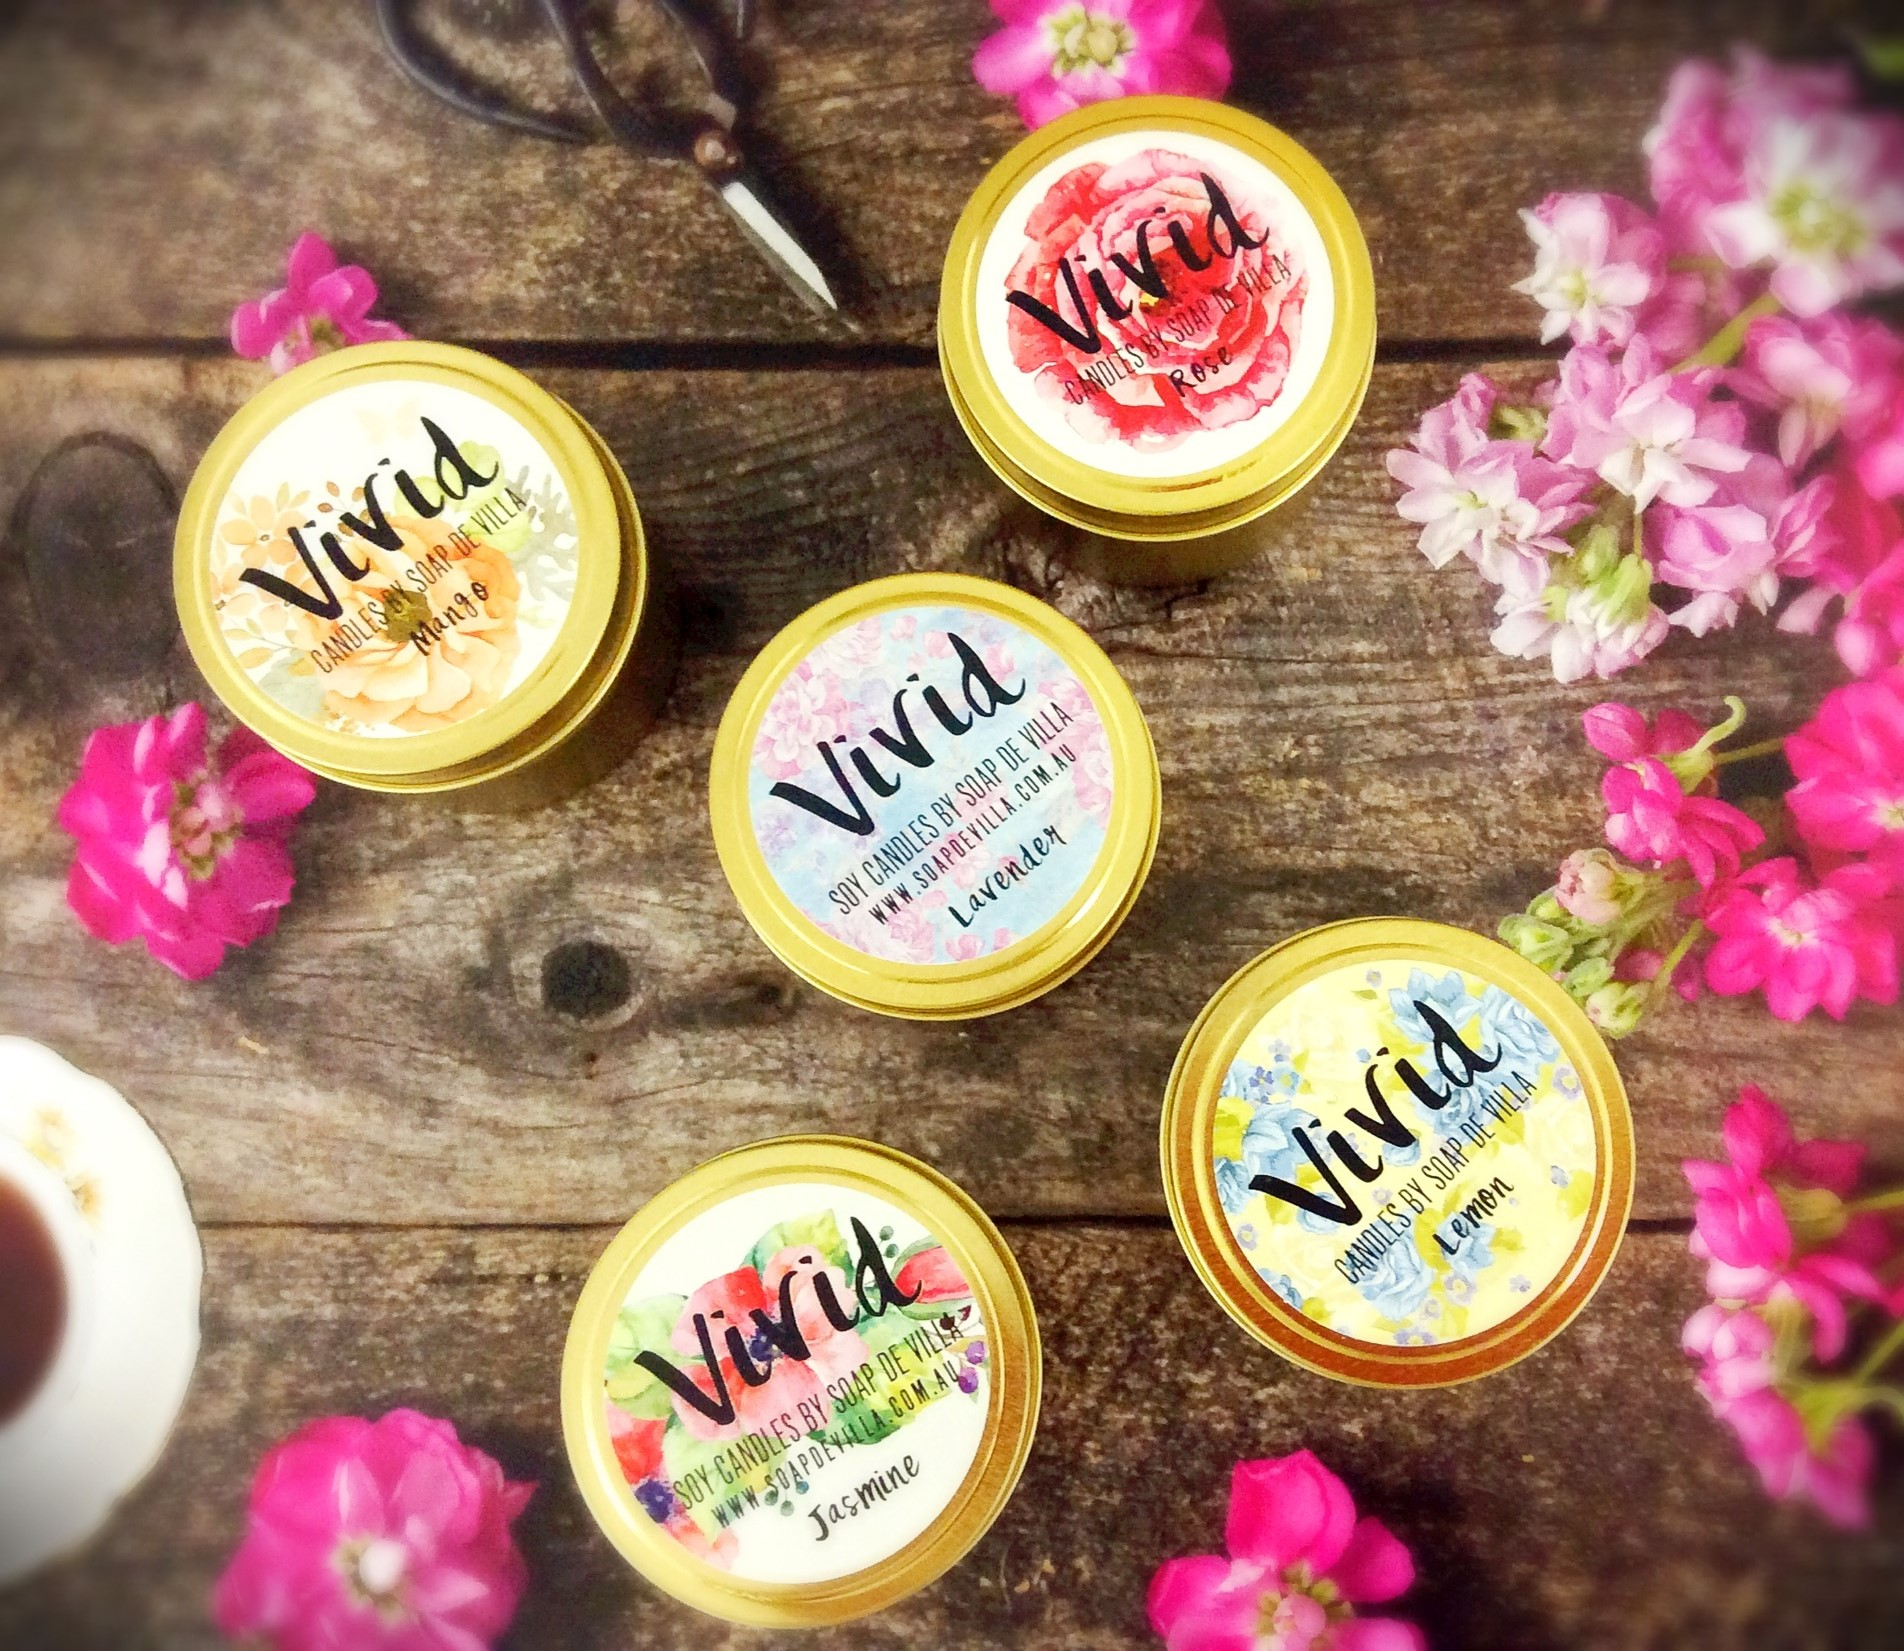 vivid-soy-candle-tins-by-soap-de-villa.jpg